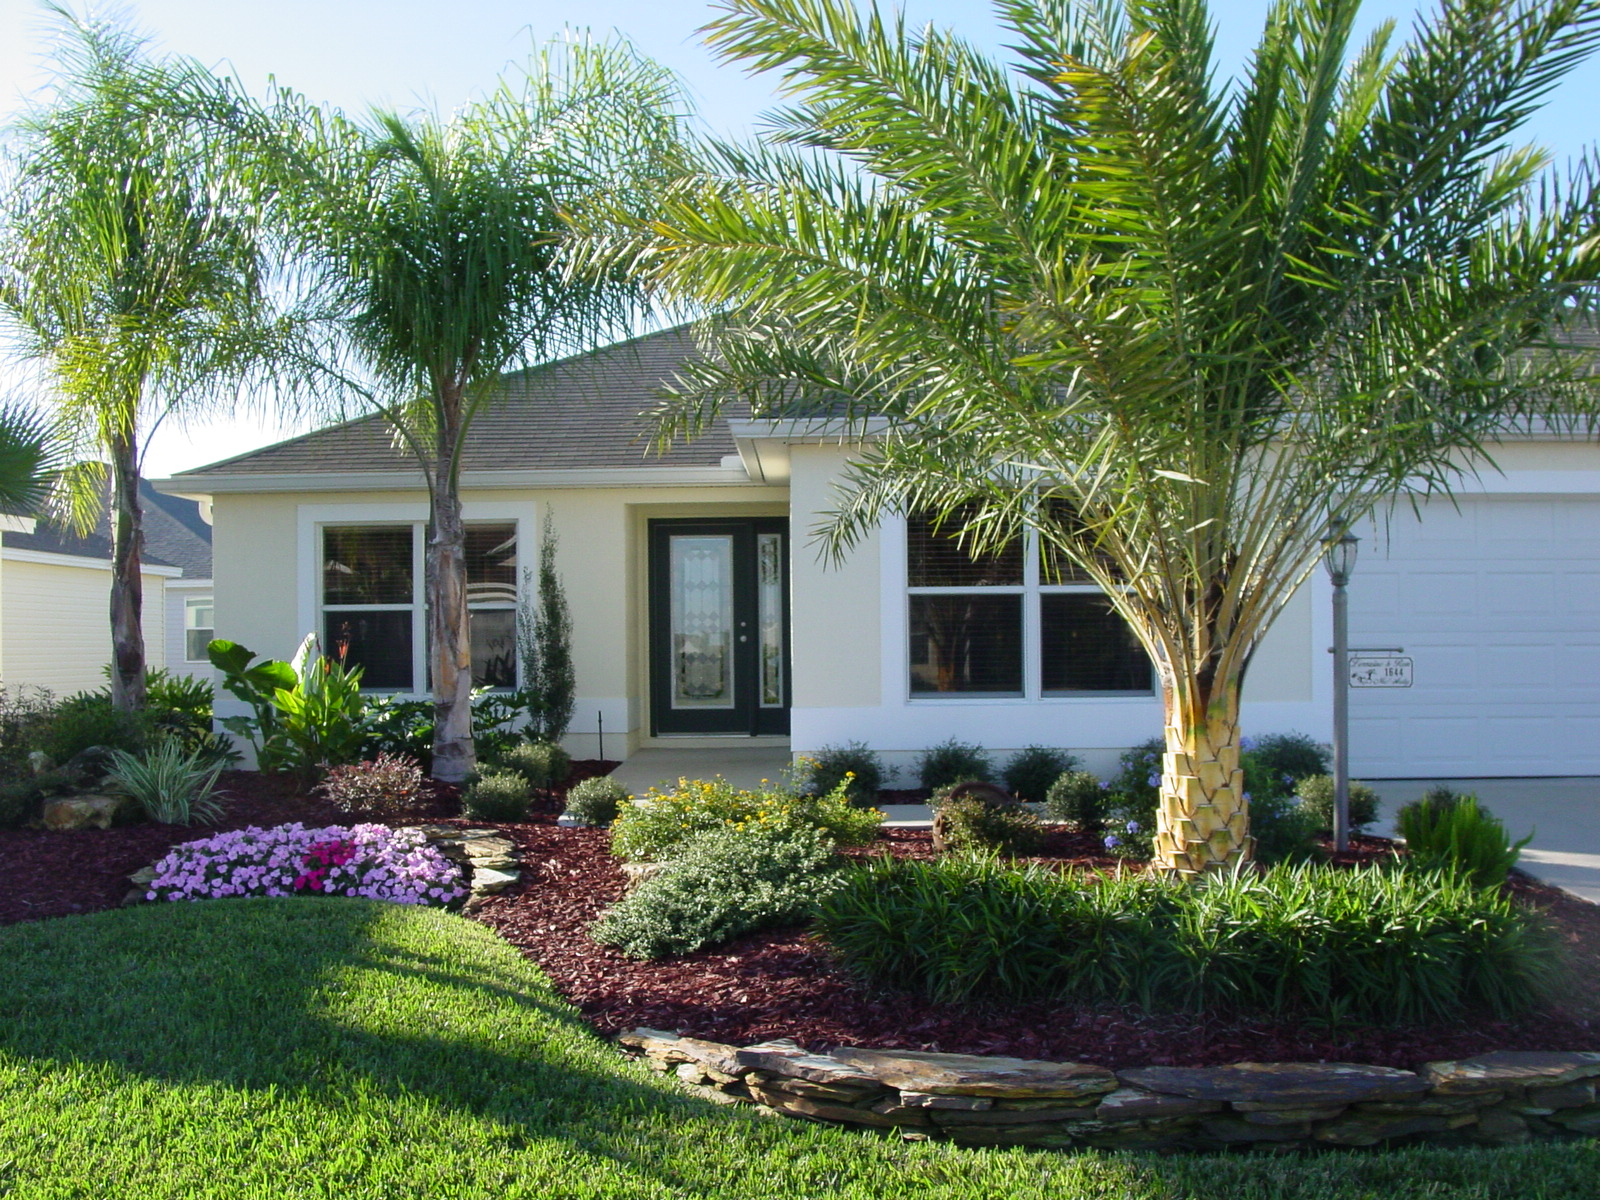 Florida garden landscape ideas photograph rons landscaping for House landscape design